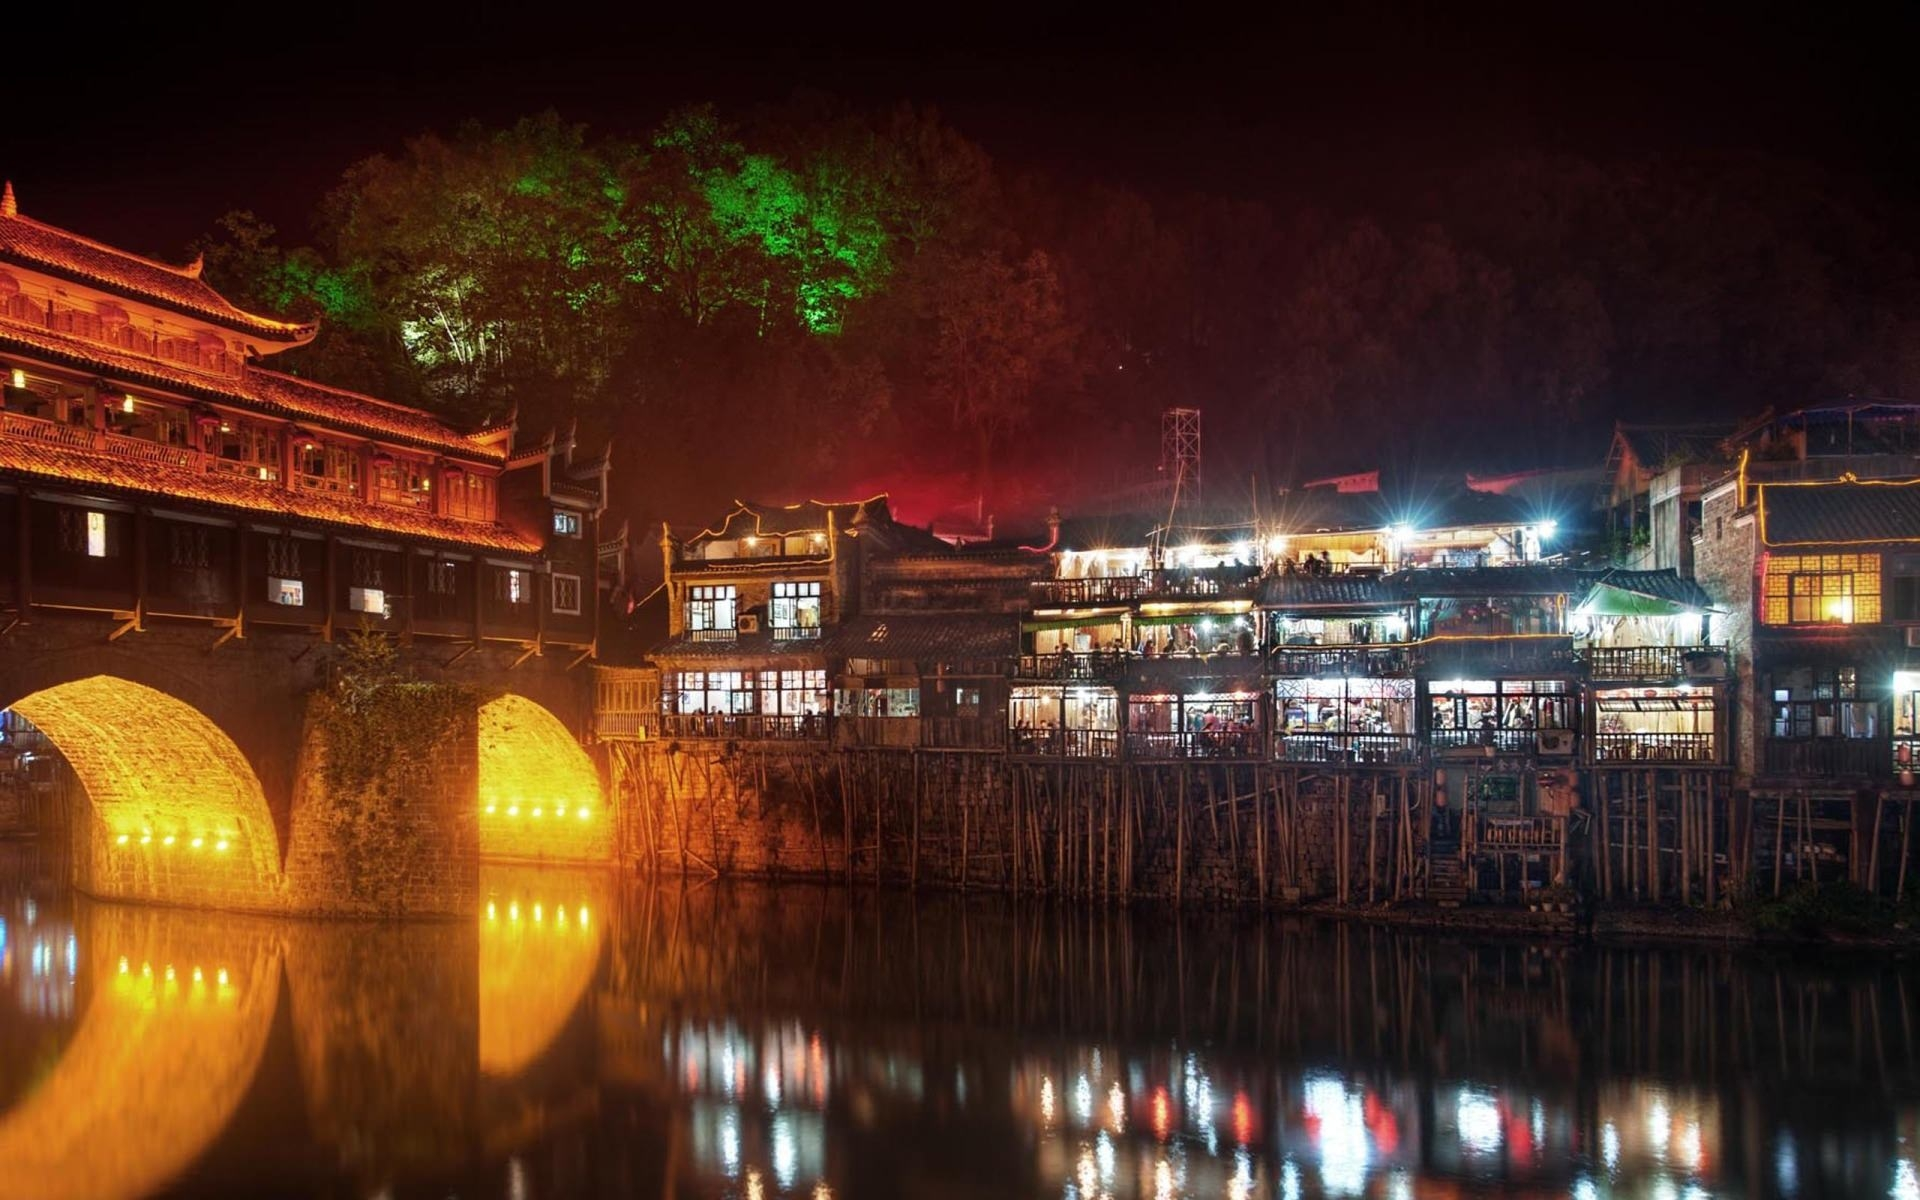 Bridge on a River in Feng Huang at Night